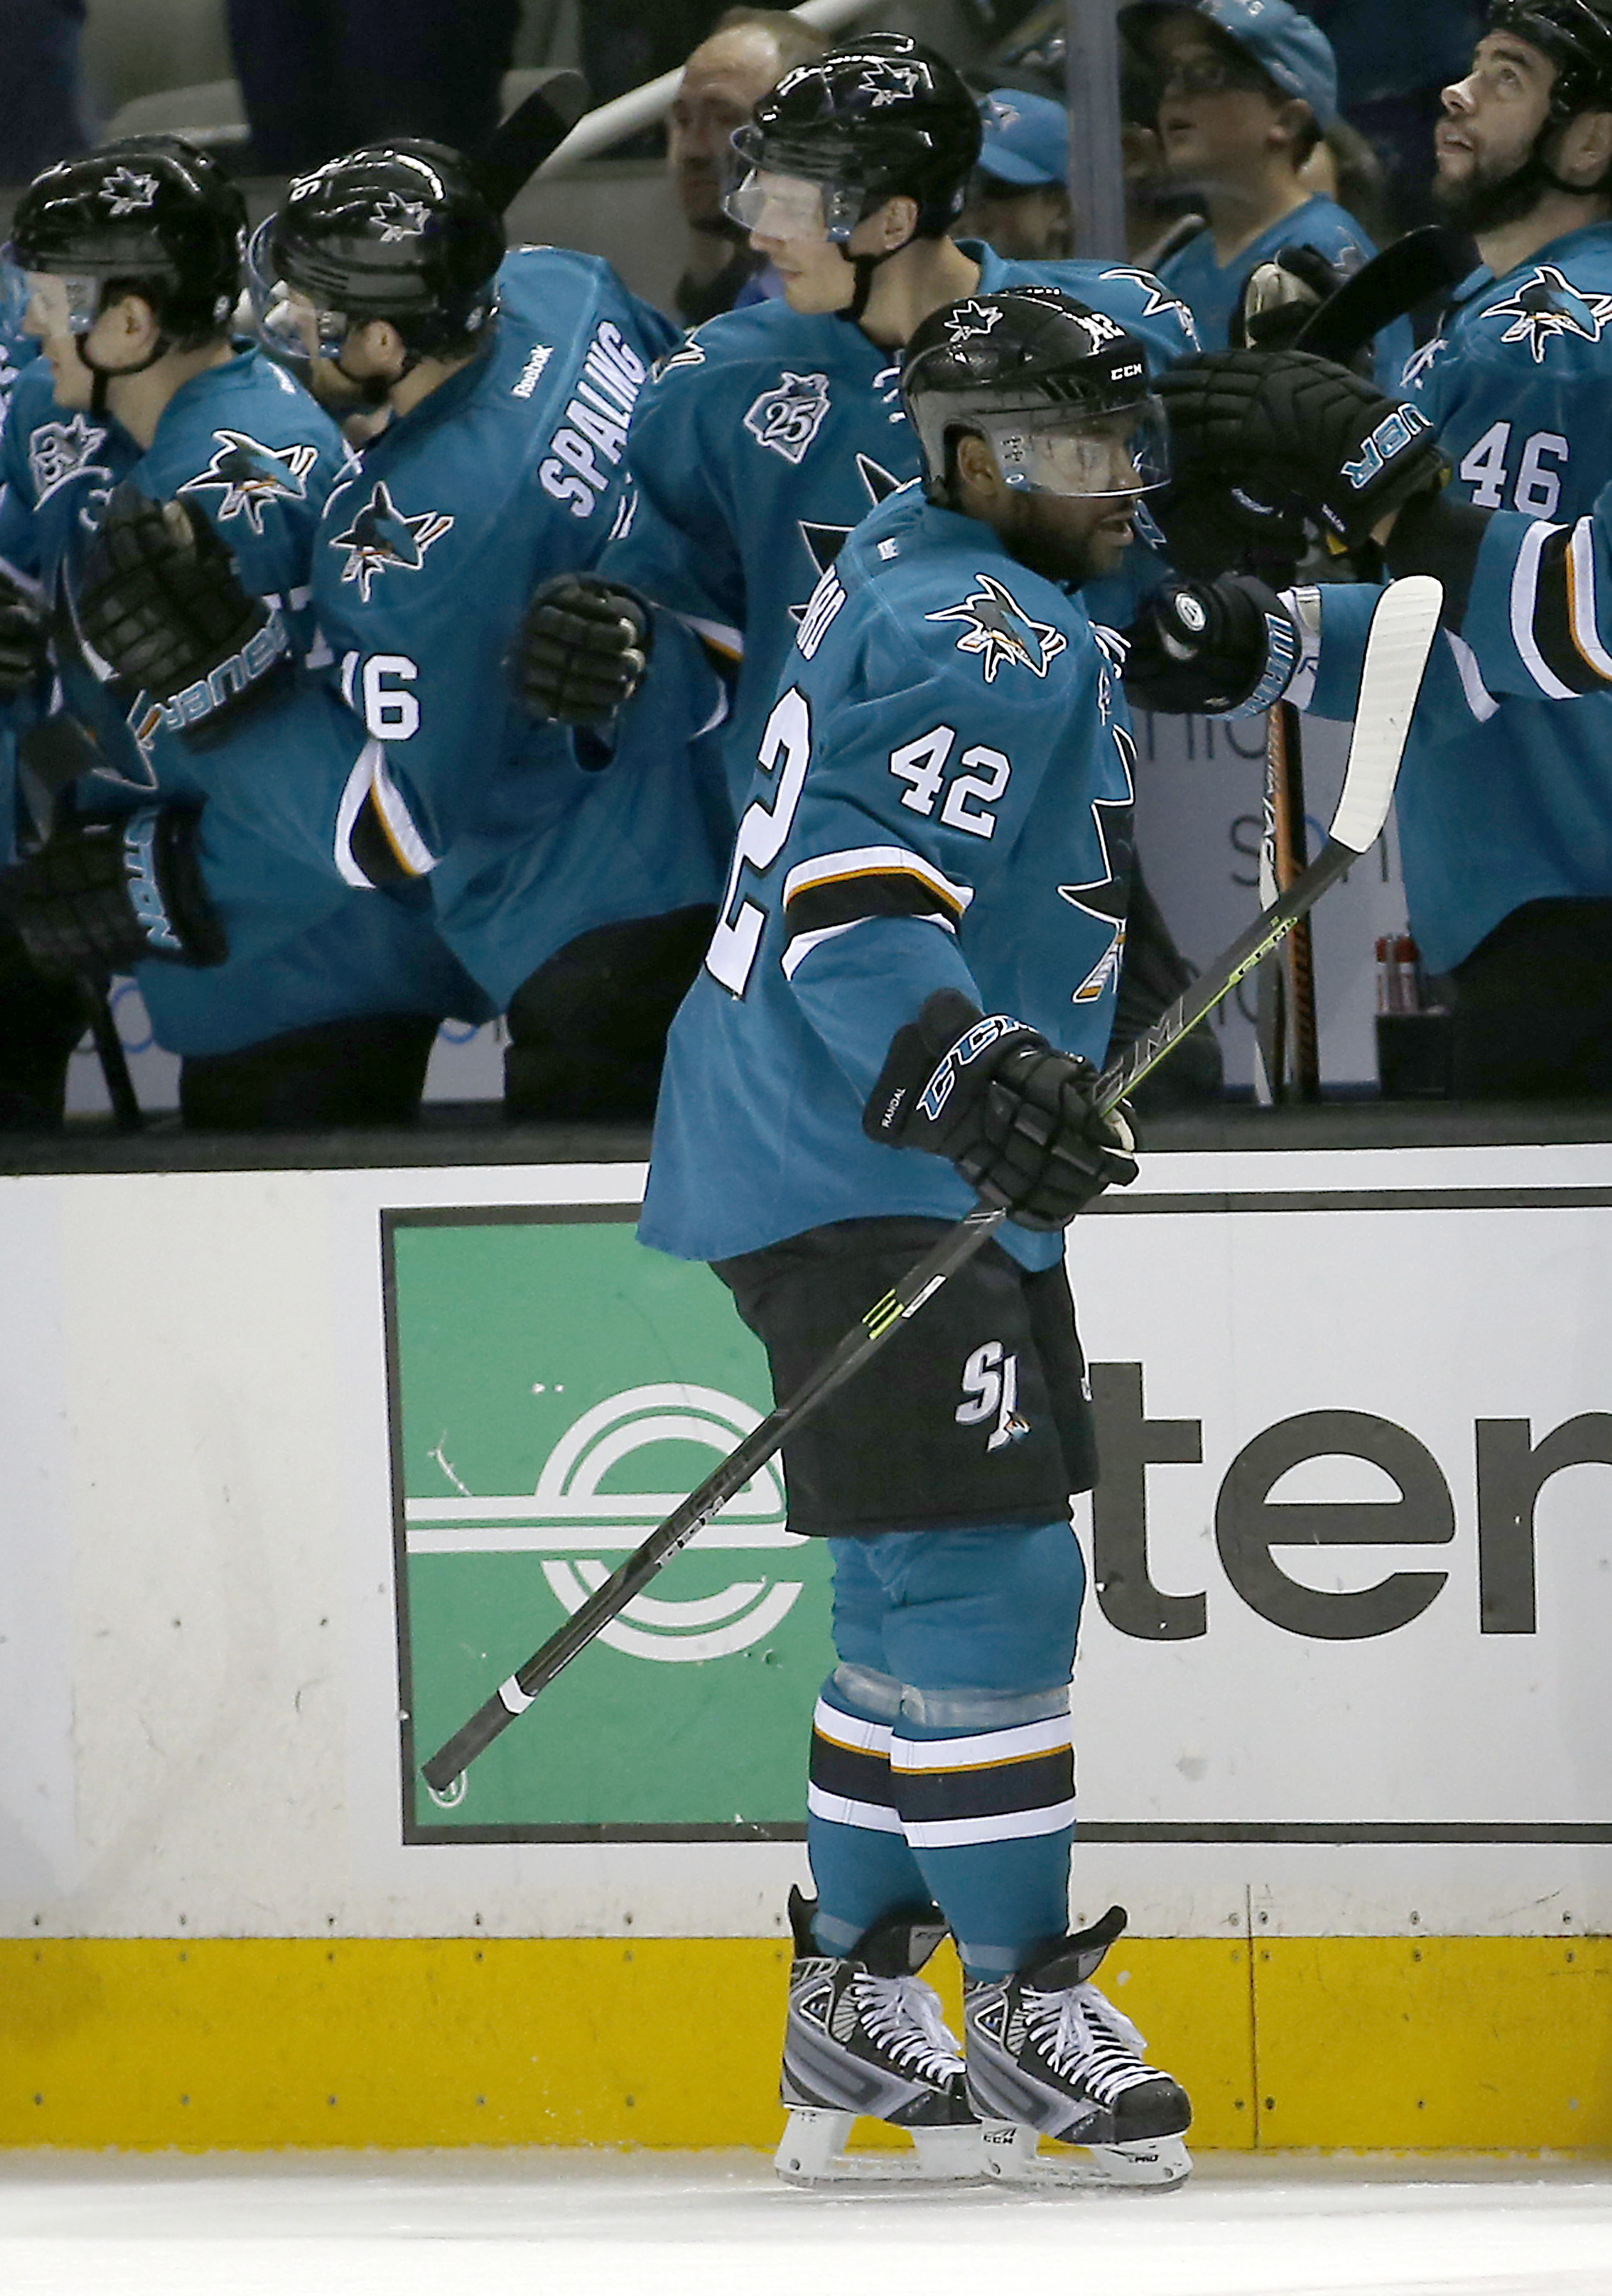 San Jose Sharks right wing Joel Ward (42) is congratulated by his teammates after scoring a goal against the New York Rangers during the second period of an NHL hockey game, Saturday, March 19, 2016, in San Jose, Calif. (AP Photo/Tony Avelar)